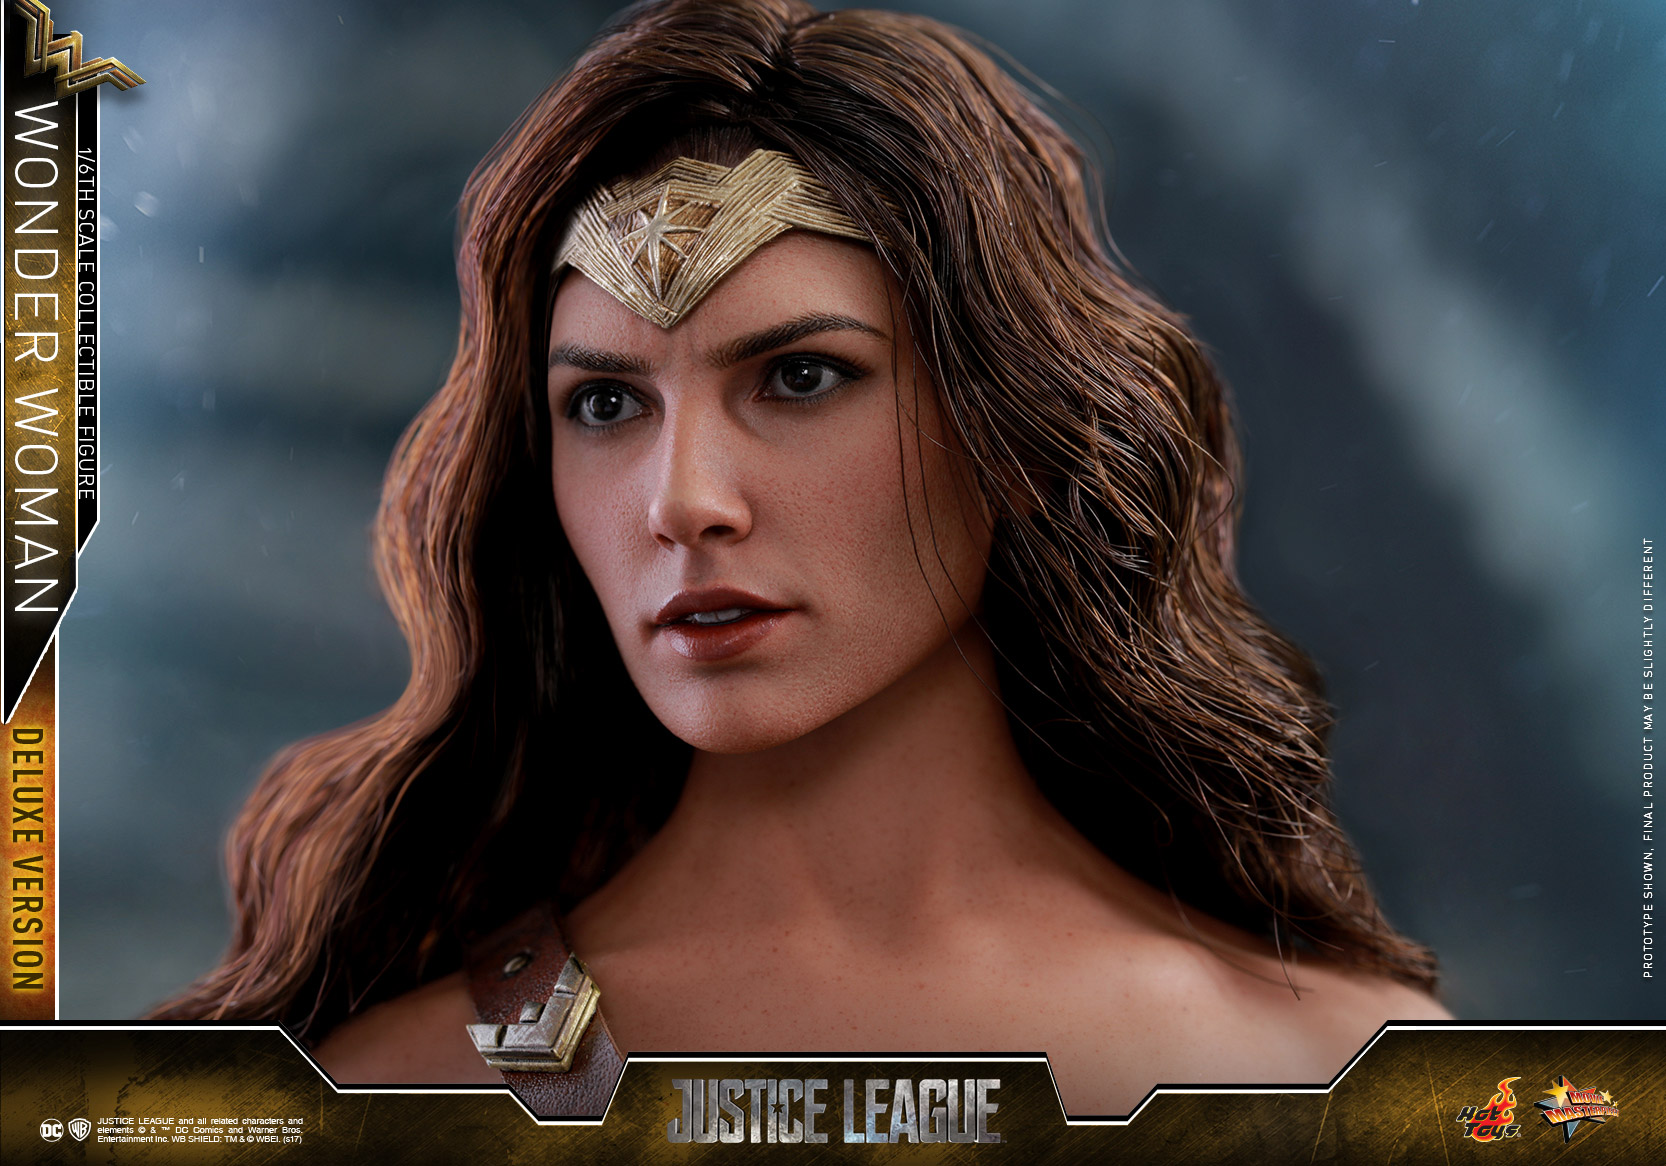 Hot-Toys-Justice-League-Wonder-Woman-collectible-figure-Deluxe_PR-22.jpg